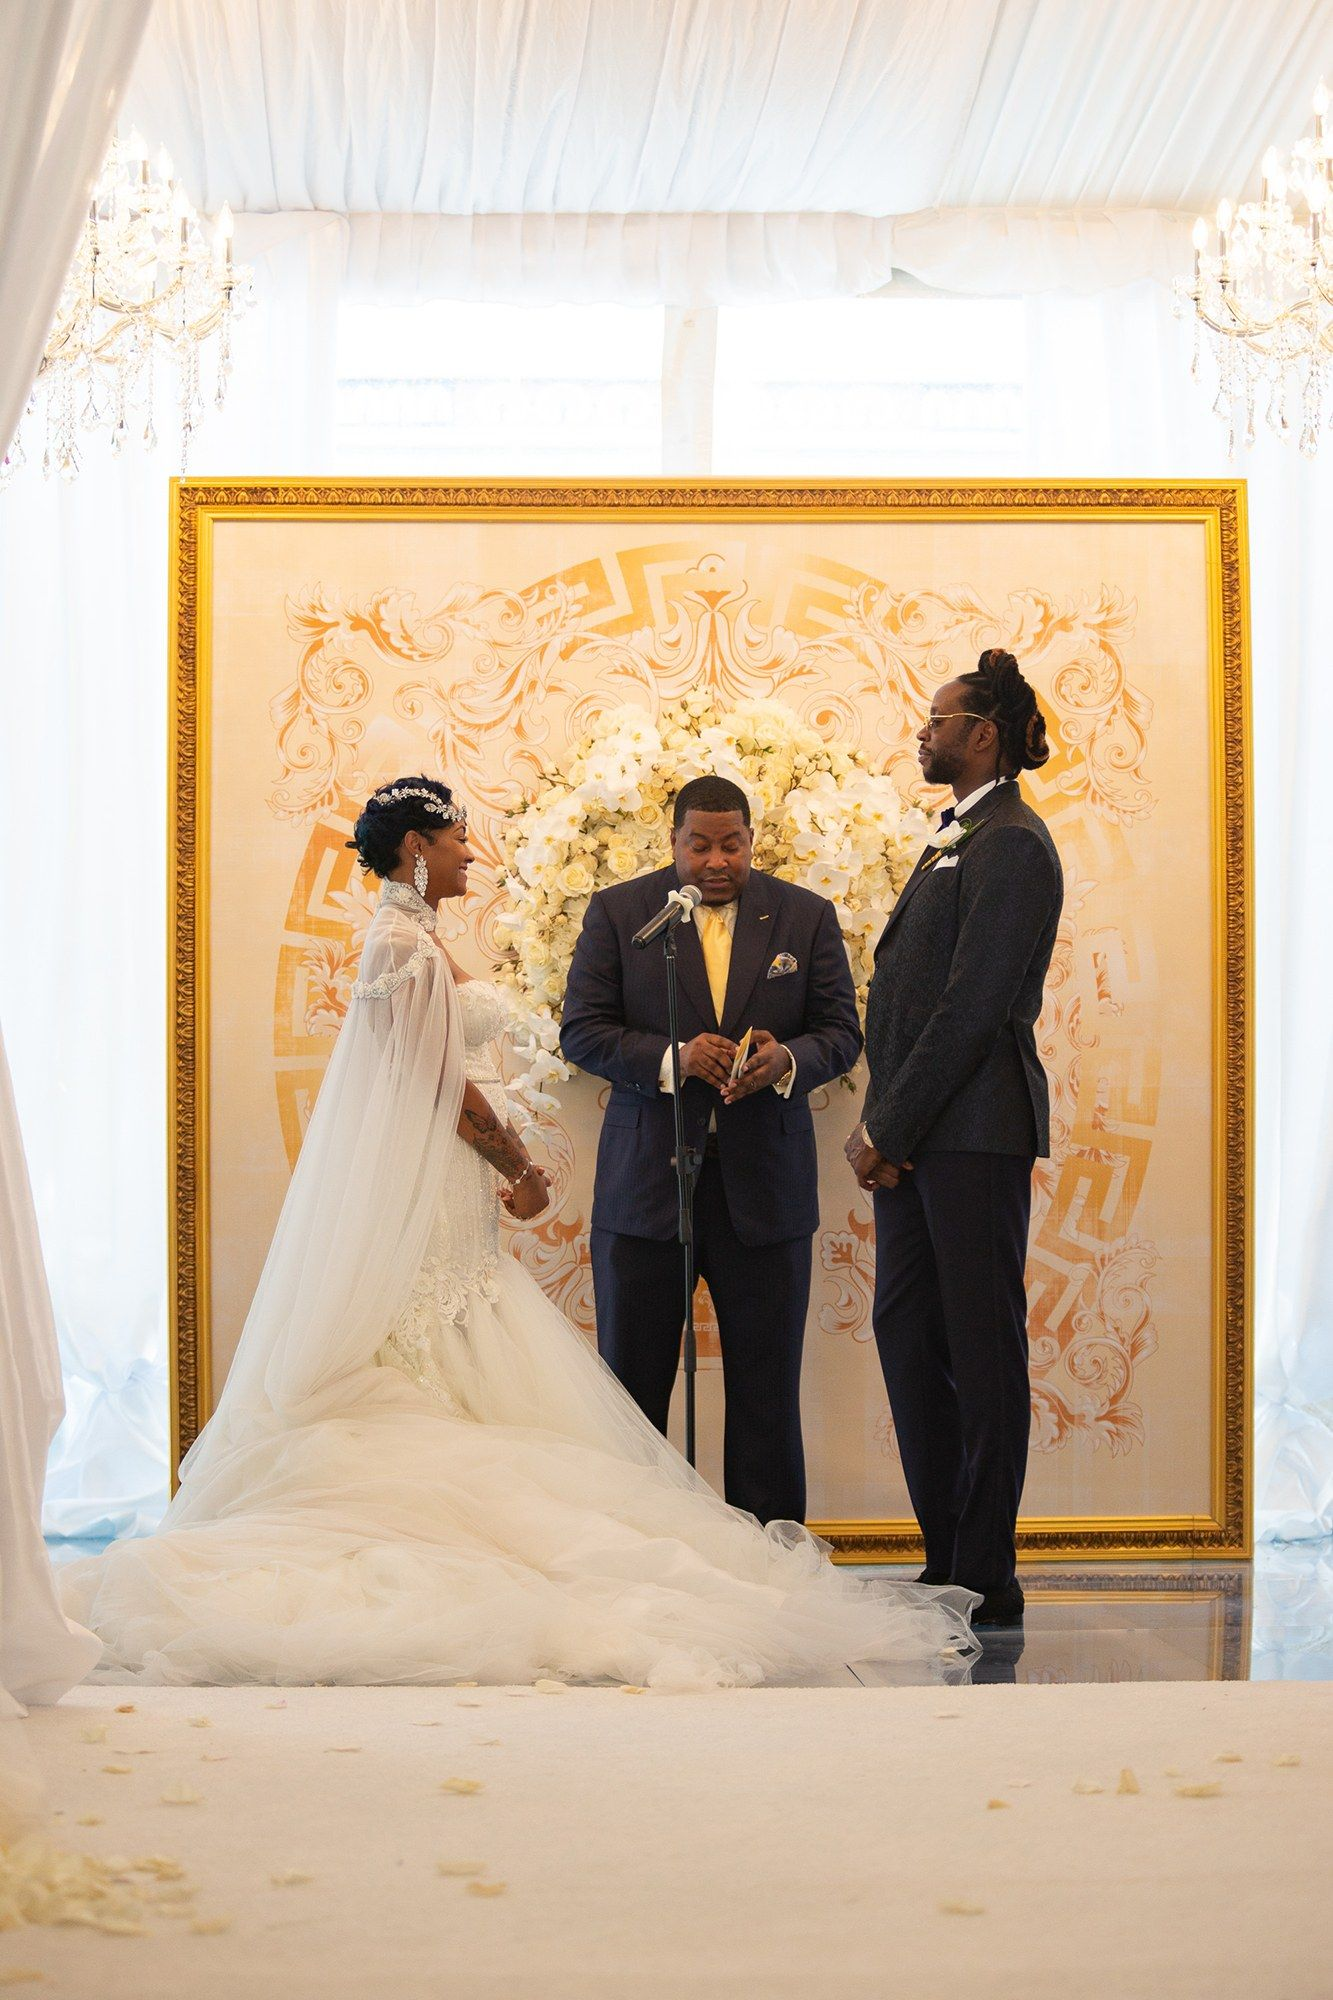 Versace wedding dress   Chainz Outdid His Met Gala Proposal With a Wedding at the Versace